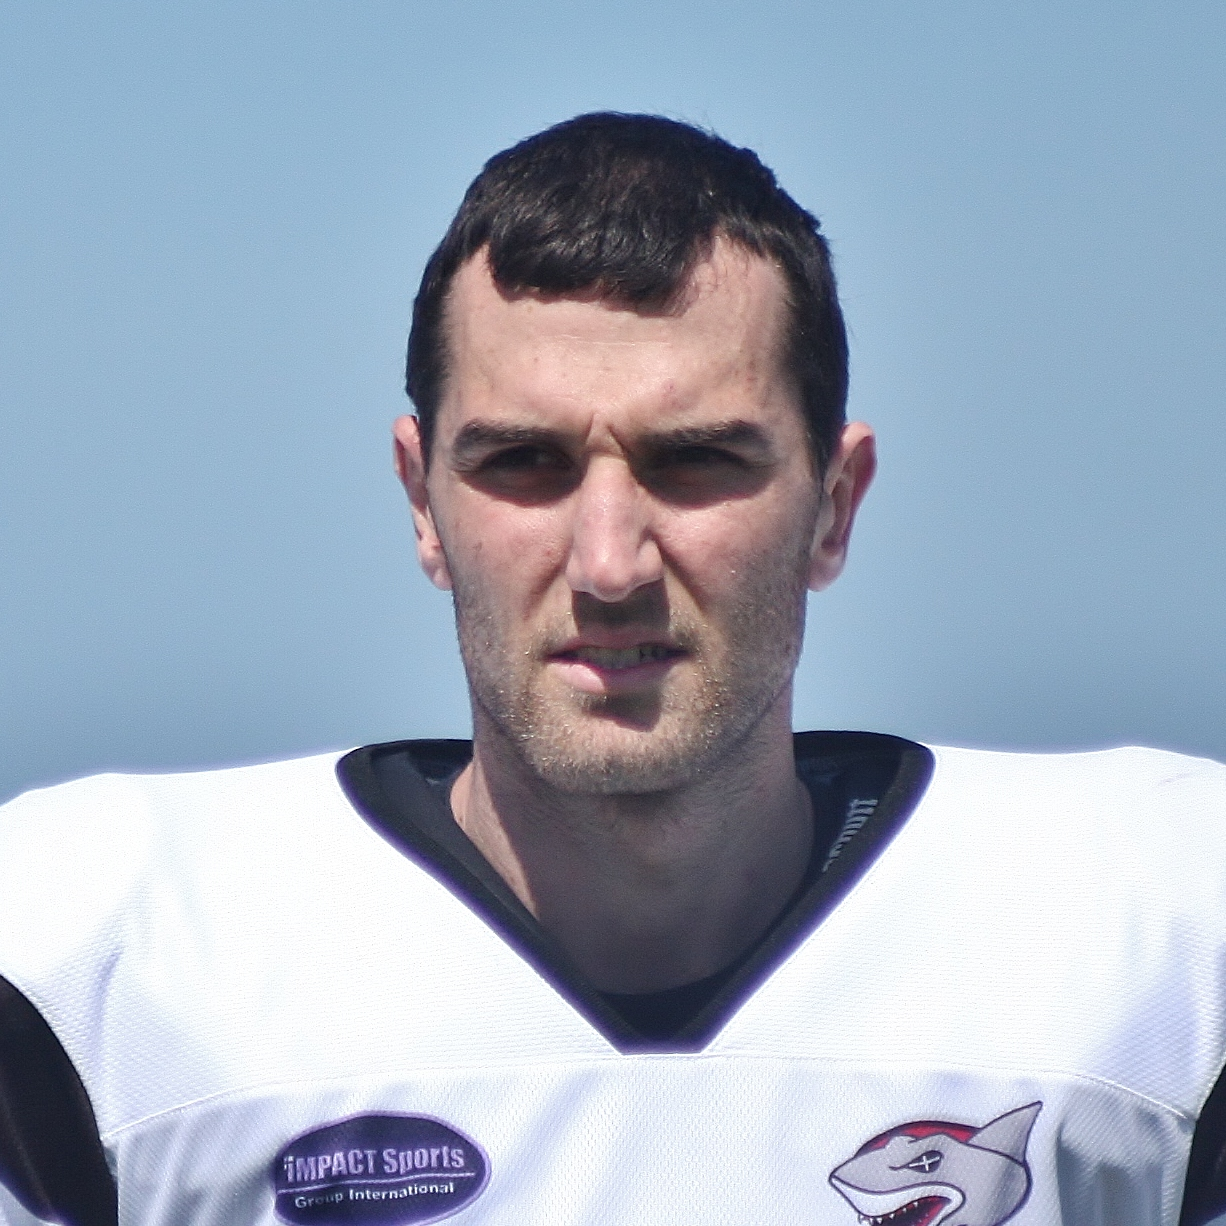 Photo of Player Matt South